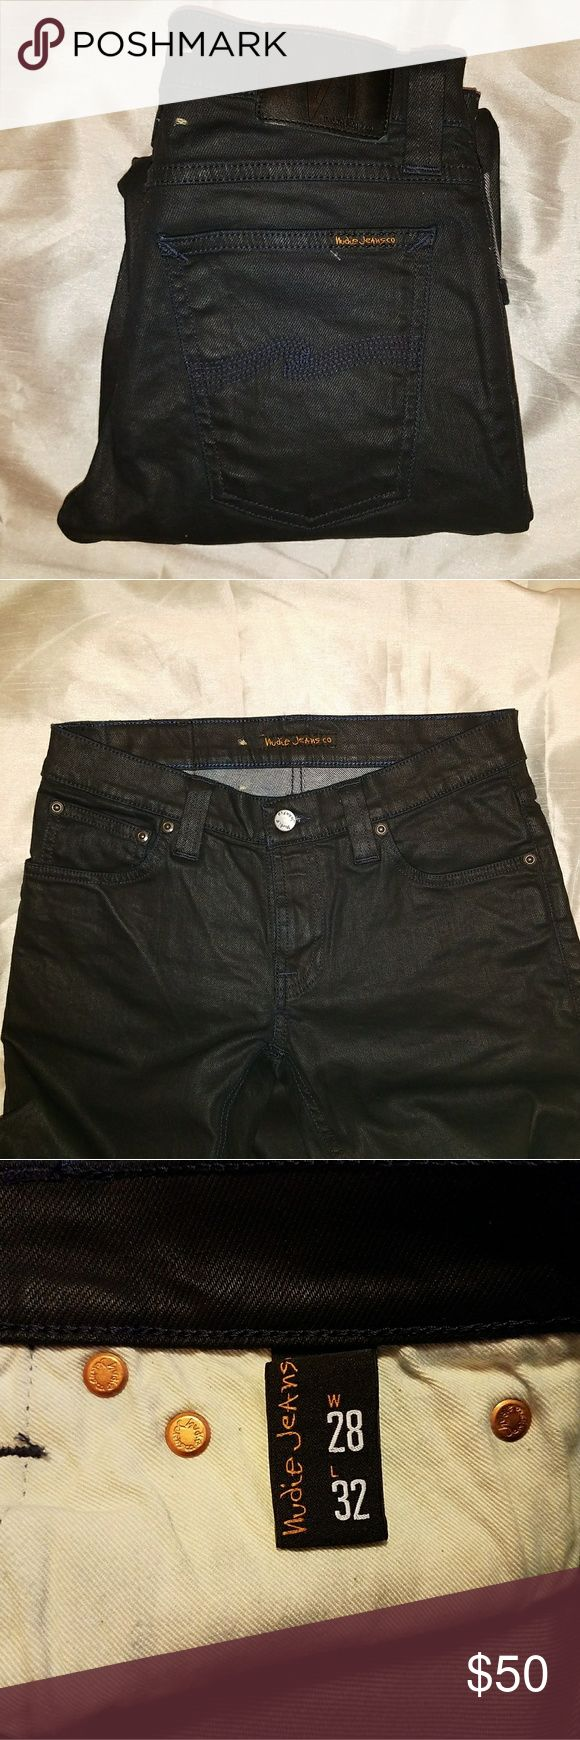 NWOT Dark Denim Nudie Jeans New without tags: Tight Long John Dark Navy Denim Jeans High Waist Jeans NEVER WORN Wax Coated Dark Navy sticthing/trim throughout Nudie Jeans Jeans Skinny